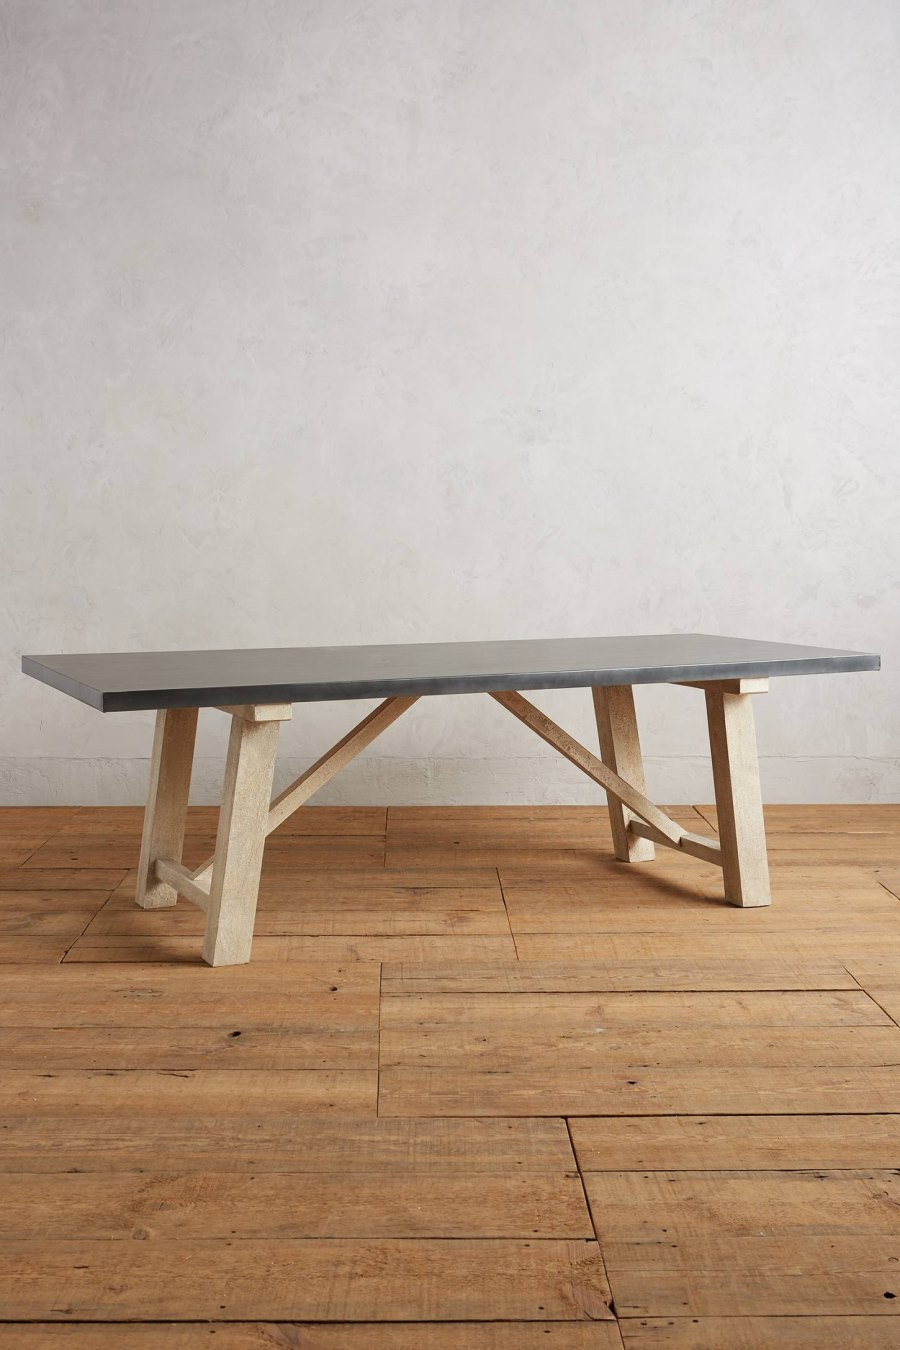 Metal and wood farmhouse table from Anthropologie